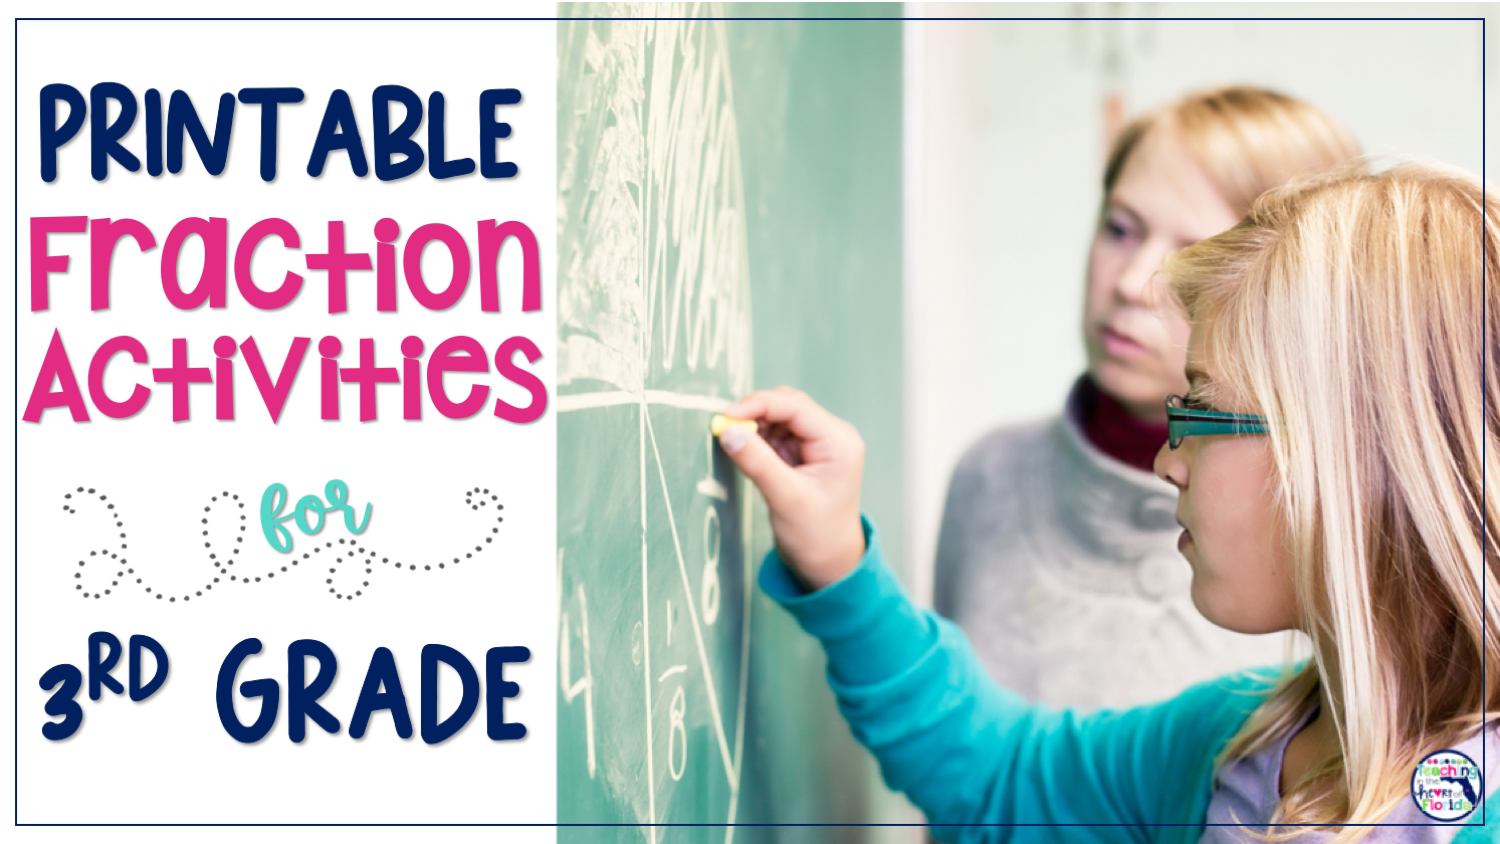 Printable Fraction Activities For 3rd Grade